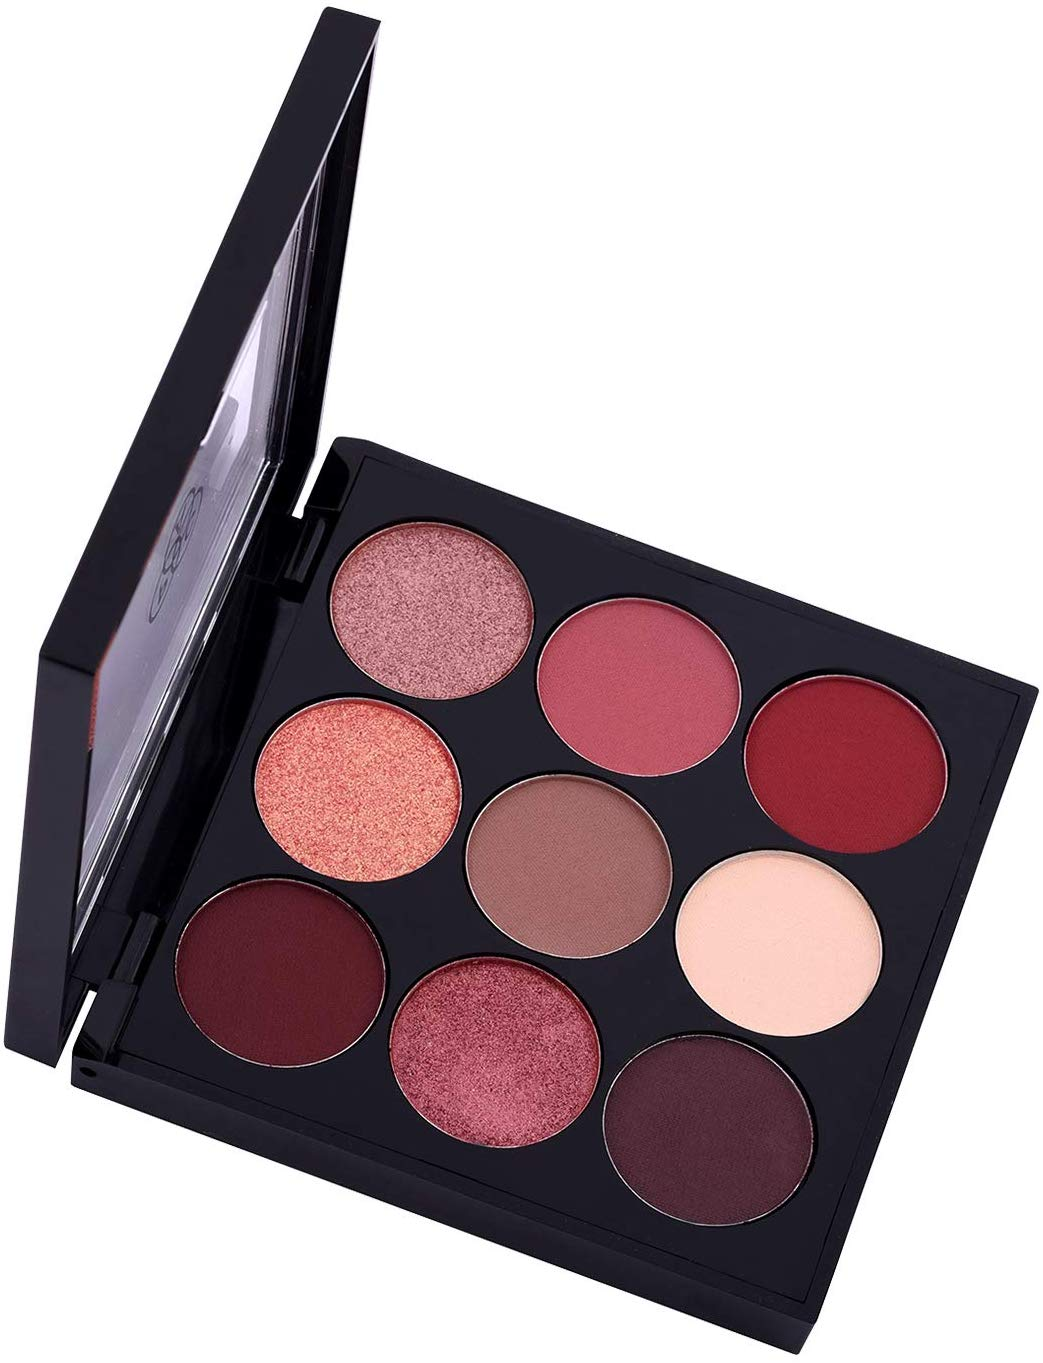 Top Affordable Eyeshadow Palettes Available In India [2020 Edition]